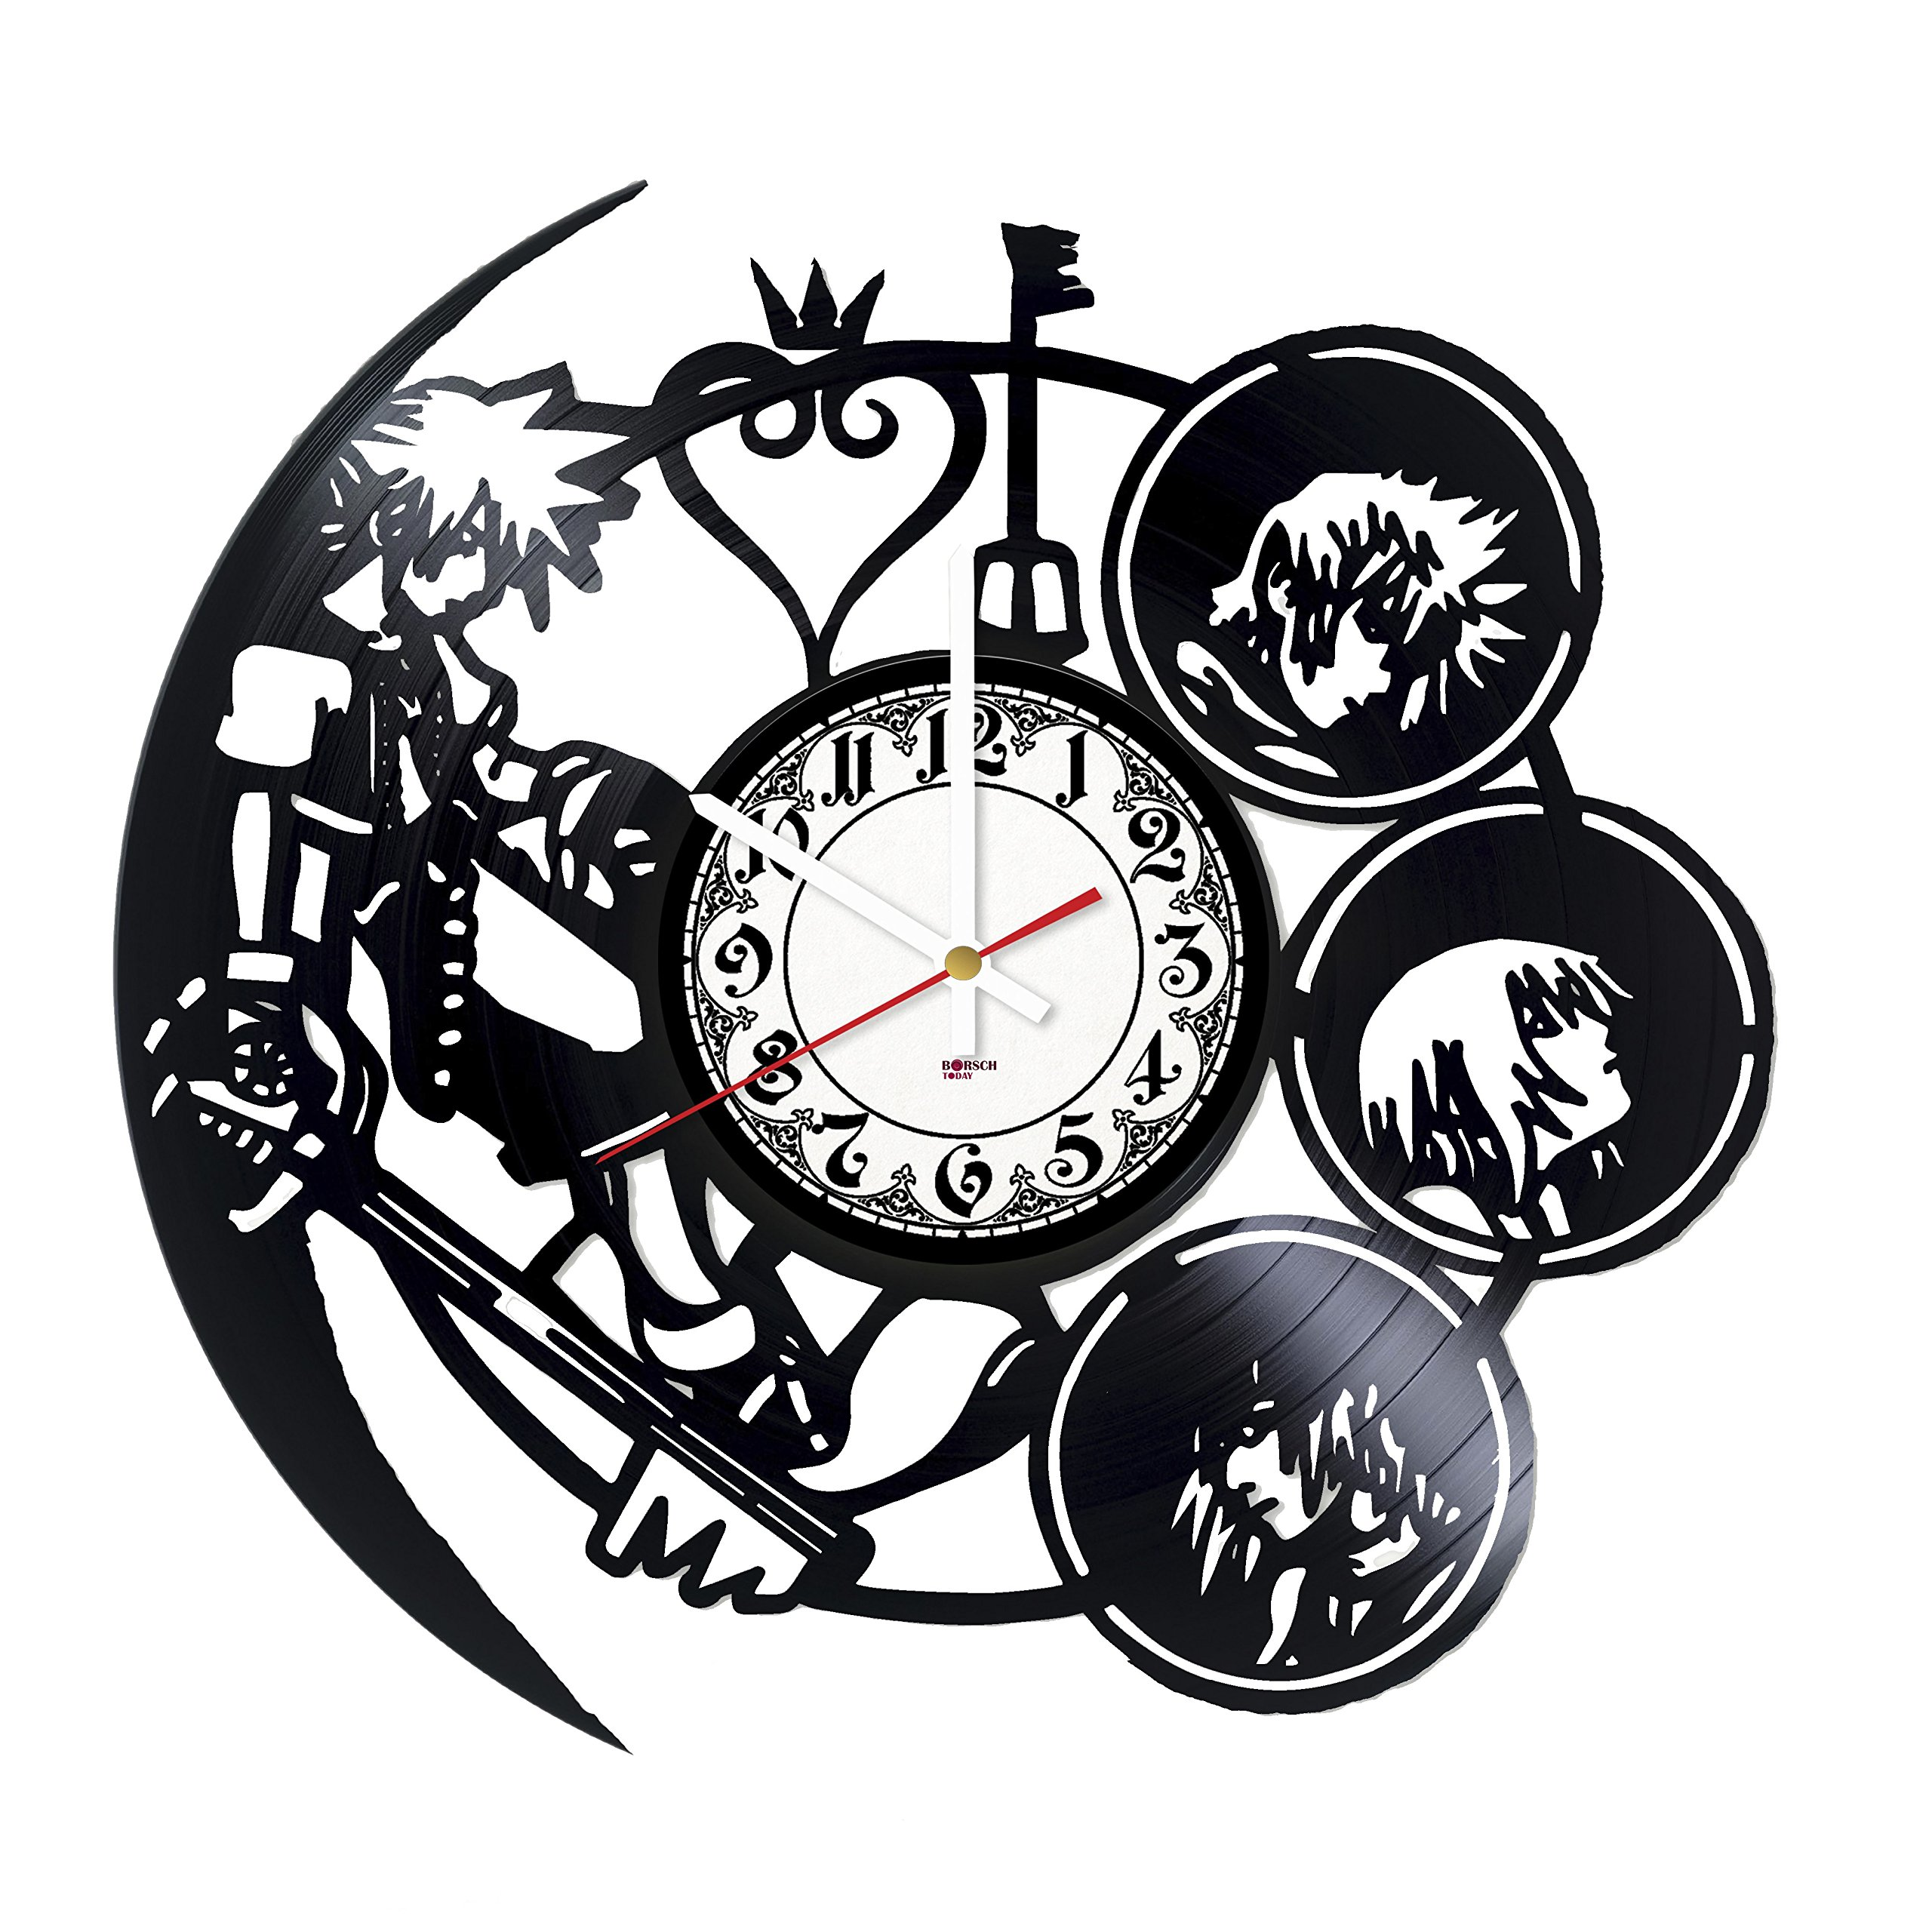 Strategy Game Vinyl Record Wall Clock - Get unique play room or living room wall decor - Gift ideas for children, siblings, teens – Video Game Unique Art Design